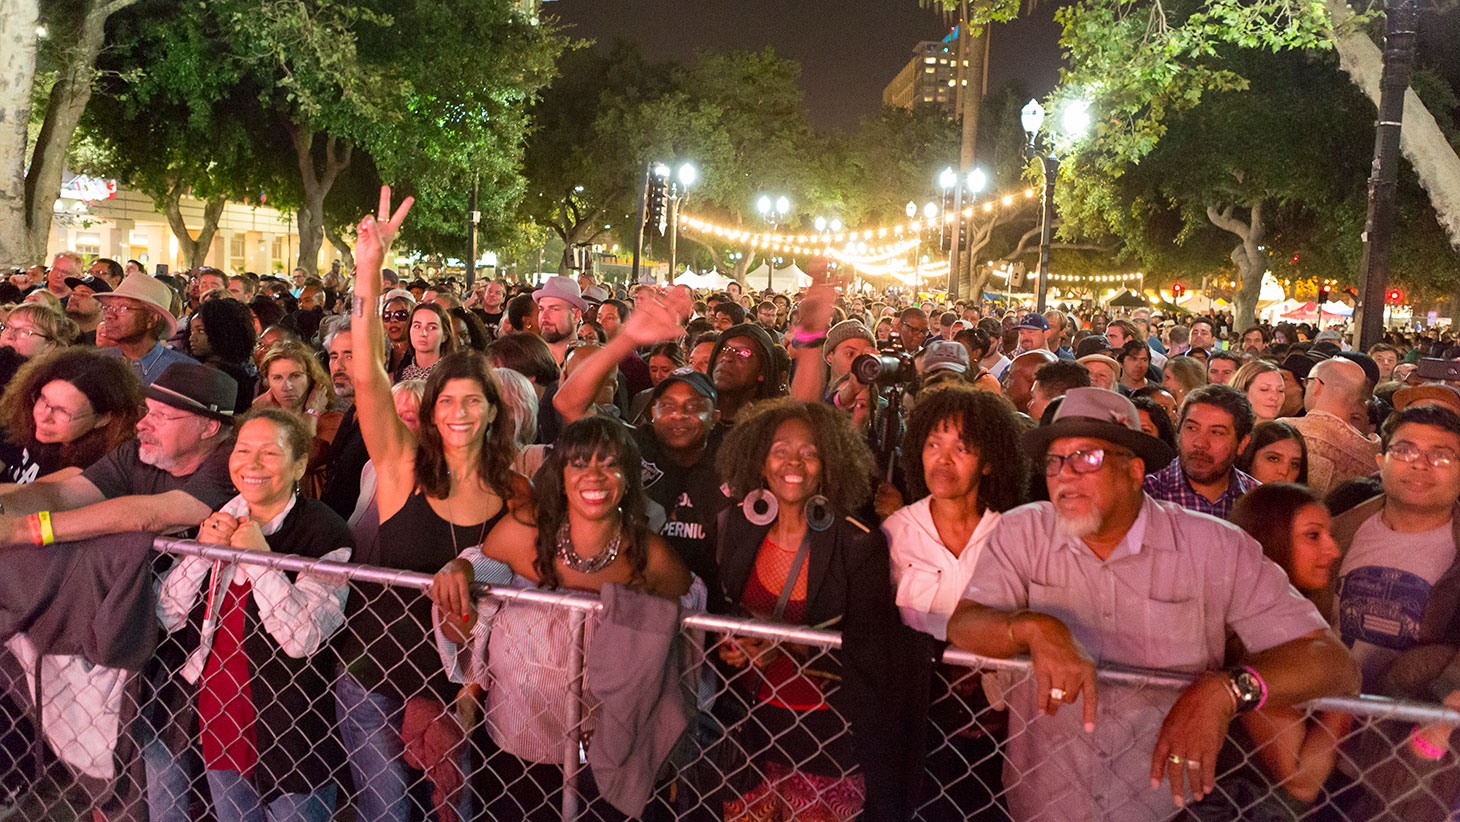 SJZSF17_Ambiance_George_Clinton_Crowd_Header_1460x822.jpg